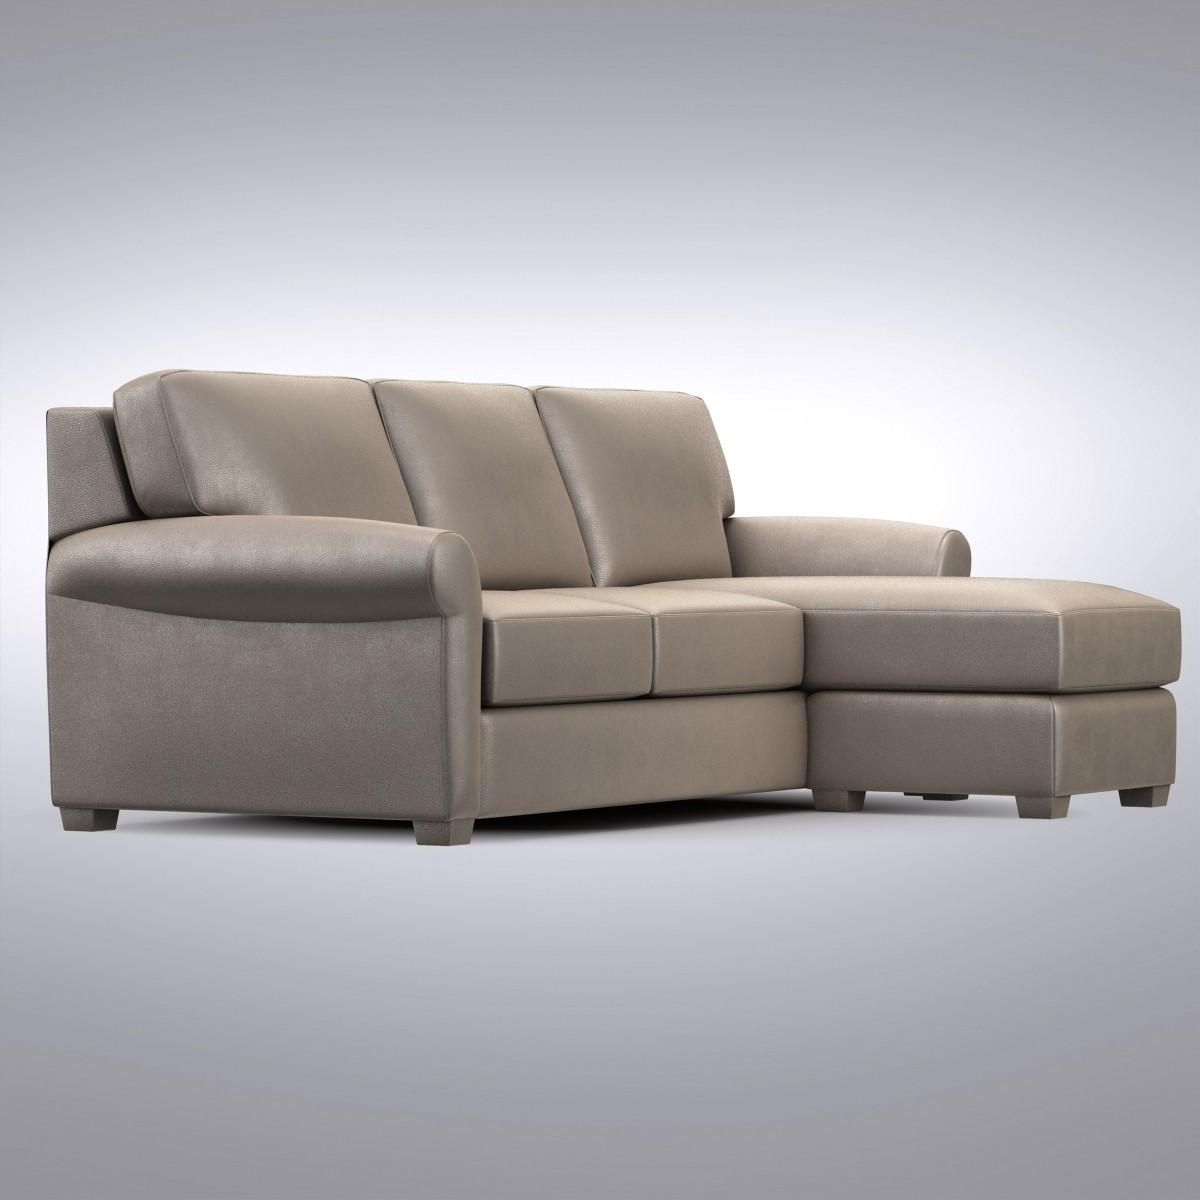 Barrel – Carlton 3D Model Within Crate And Barrel Sofa Sleepers (Image 5 of 20)